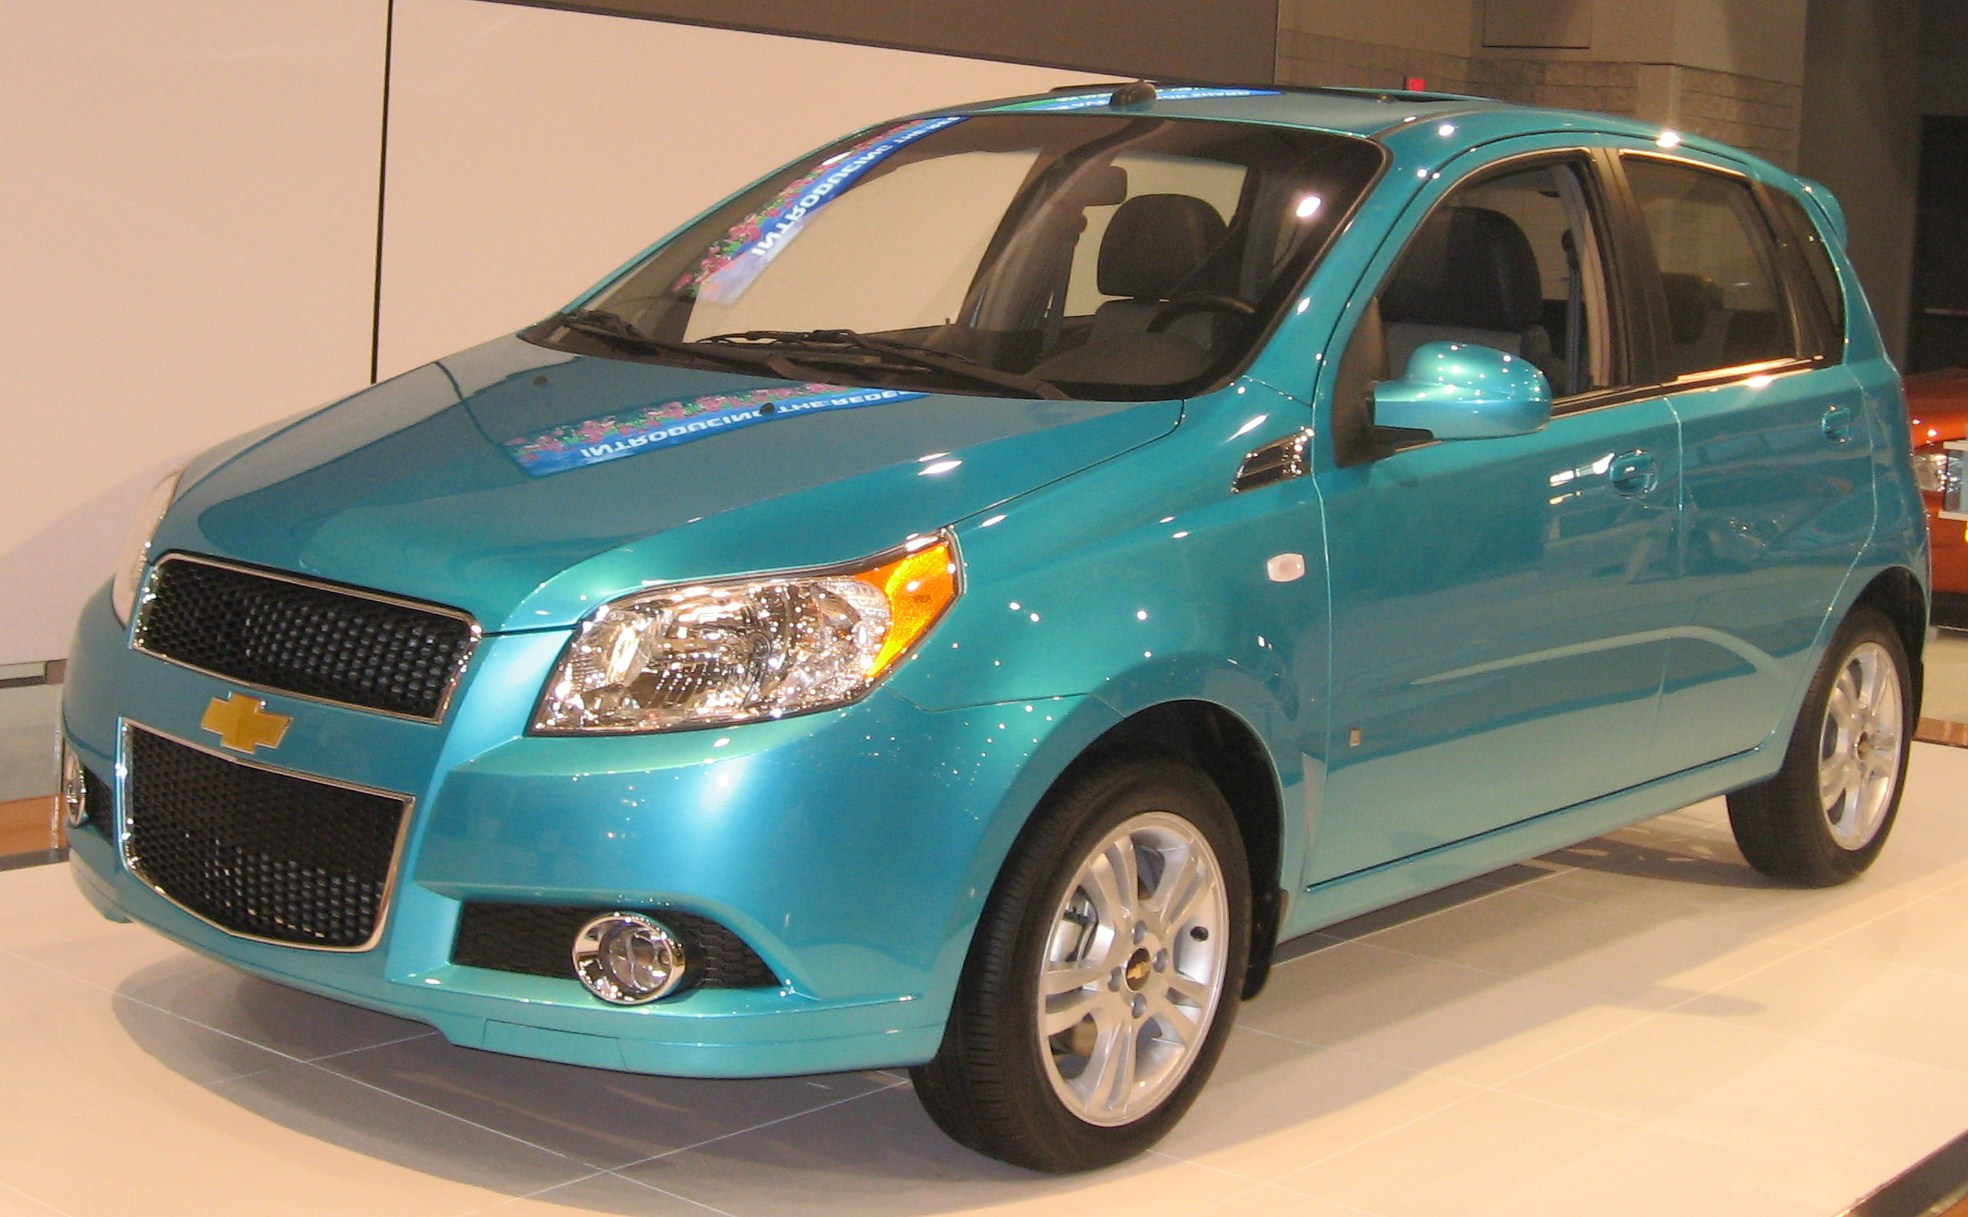 2009 chevrolet aveo information and photos momentcar. Black Bedroom Furniture Sets. Home Design Ideas